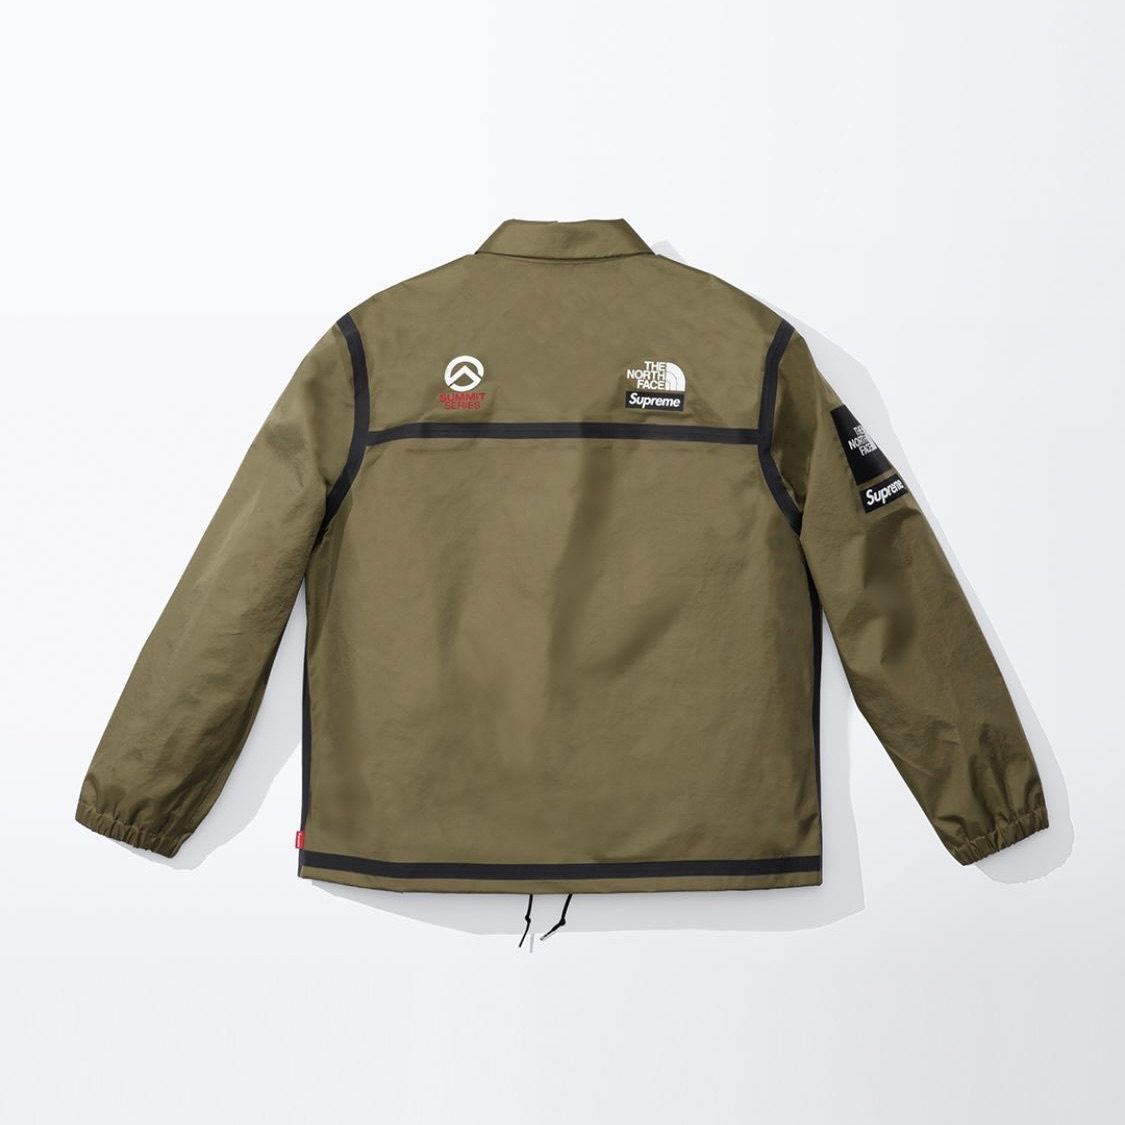 supreme-the-north-face-summit-series-outer-tape-seam-collection-release-21ss-20210529-week14